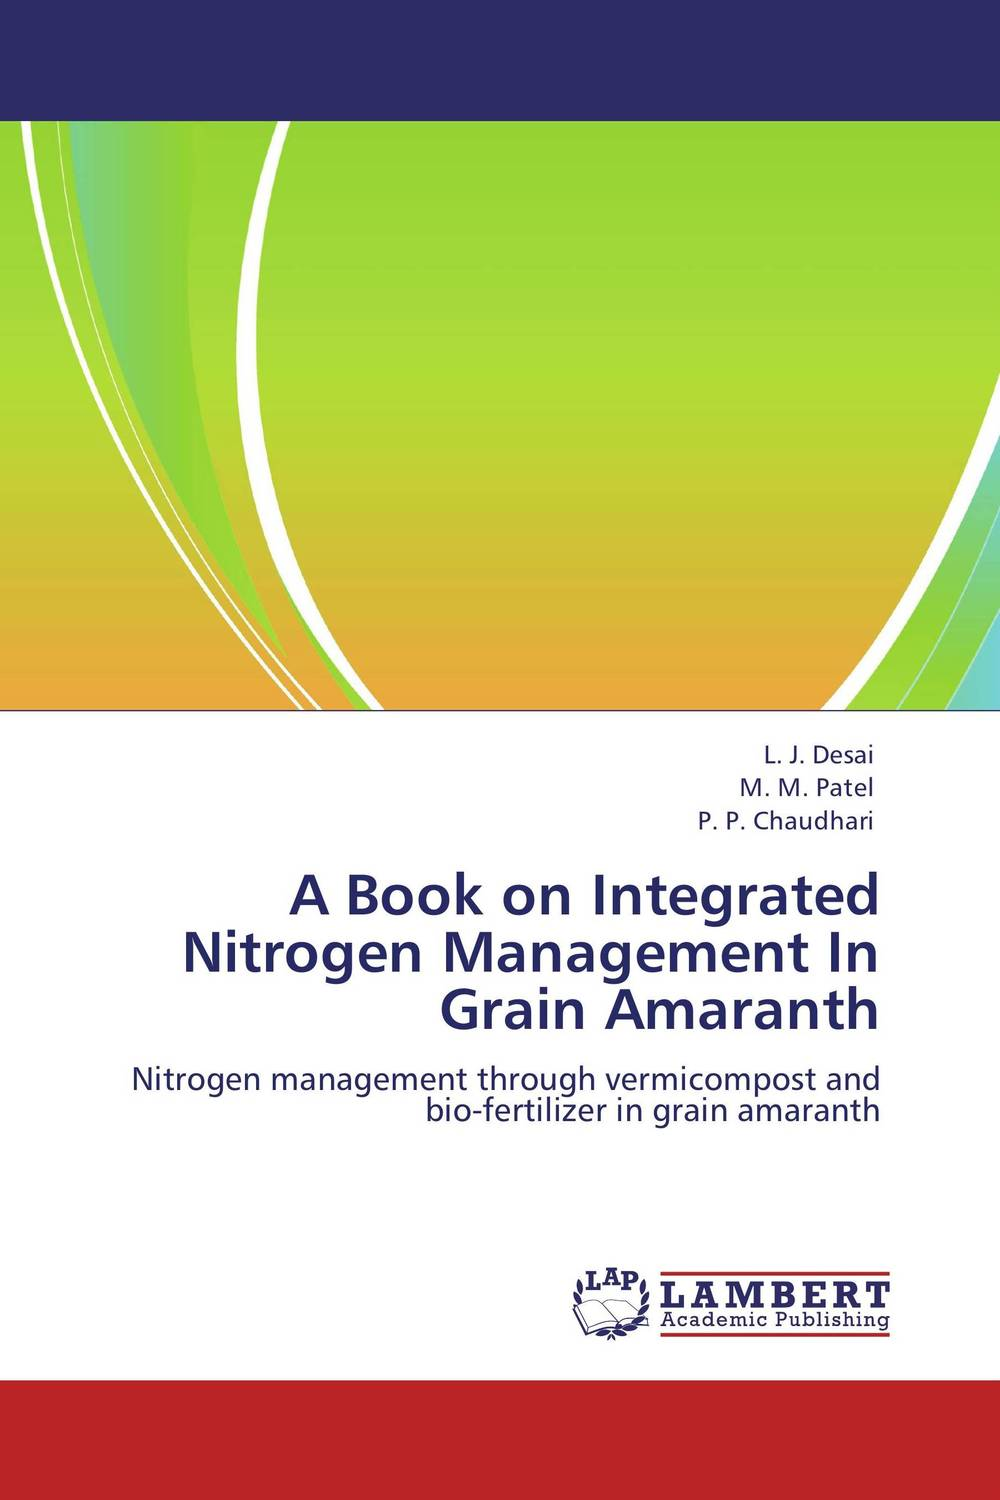 A Book on Integrated Nitrogen Management In Grain Amaranth